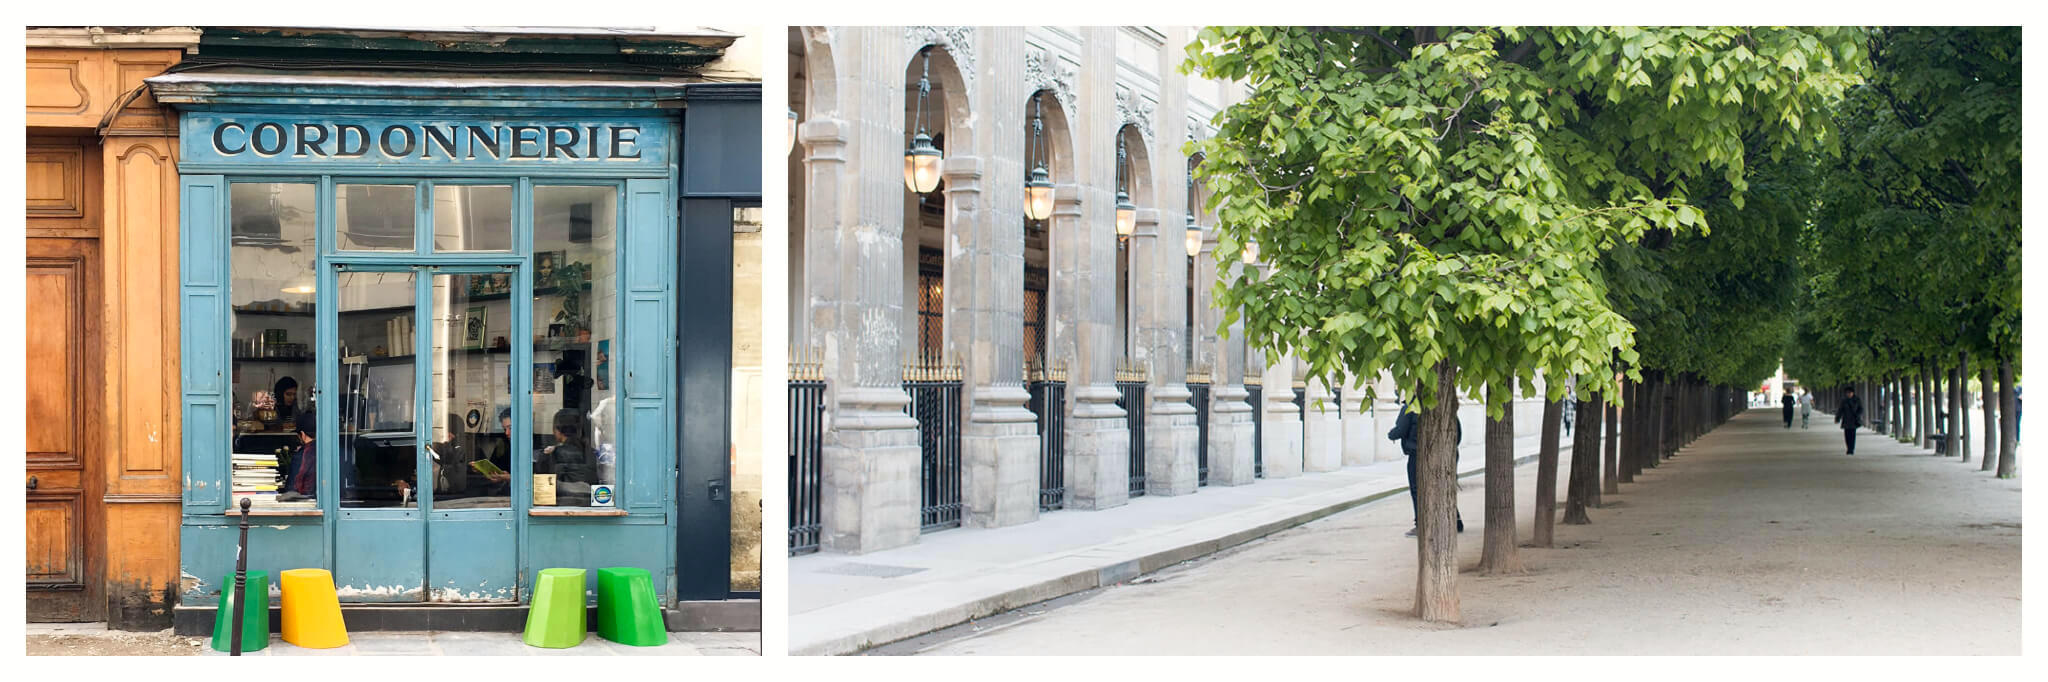 """On left: The iconic facade of the Boot Café, in Paris' 3rd arrondissement, greets customers with its cheery blue  paint and old-fashioned sign, """"Cordonnerie,"""" a nod to the space's history as a cobbler shop. On right: The lush trees of the Palais Royal garden shade those on a stroll."""